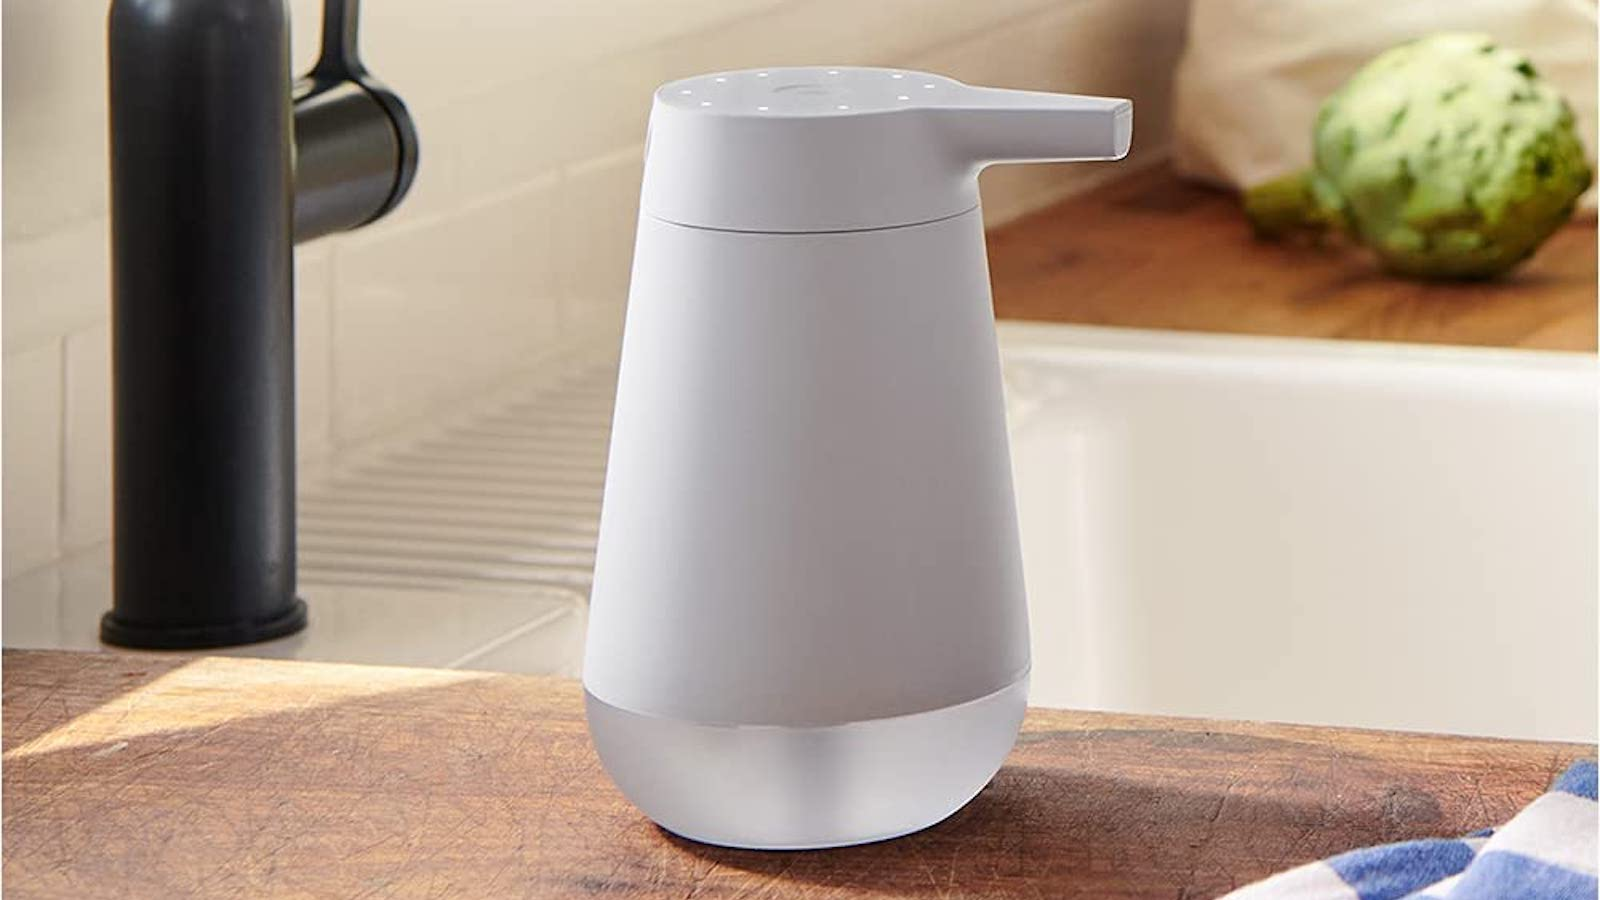 Amazon Smart Soap Dispenser has a 20-second timer and works with a compatible Echo device